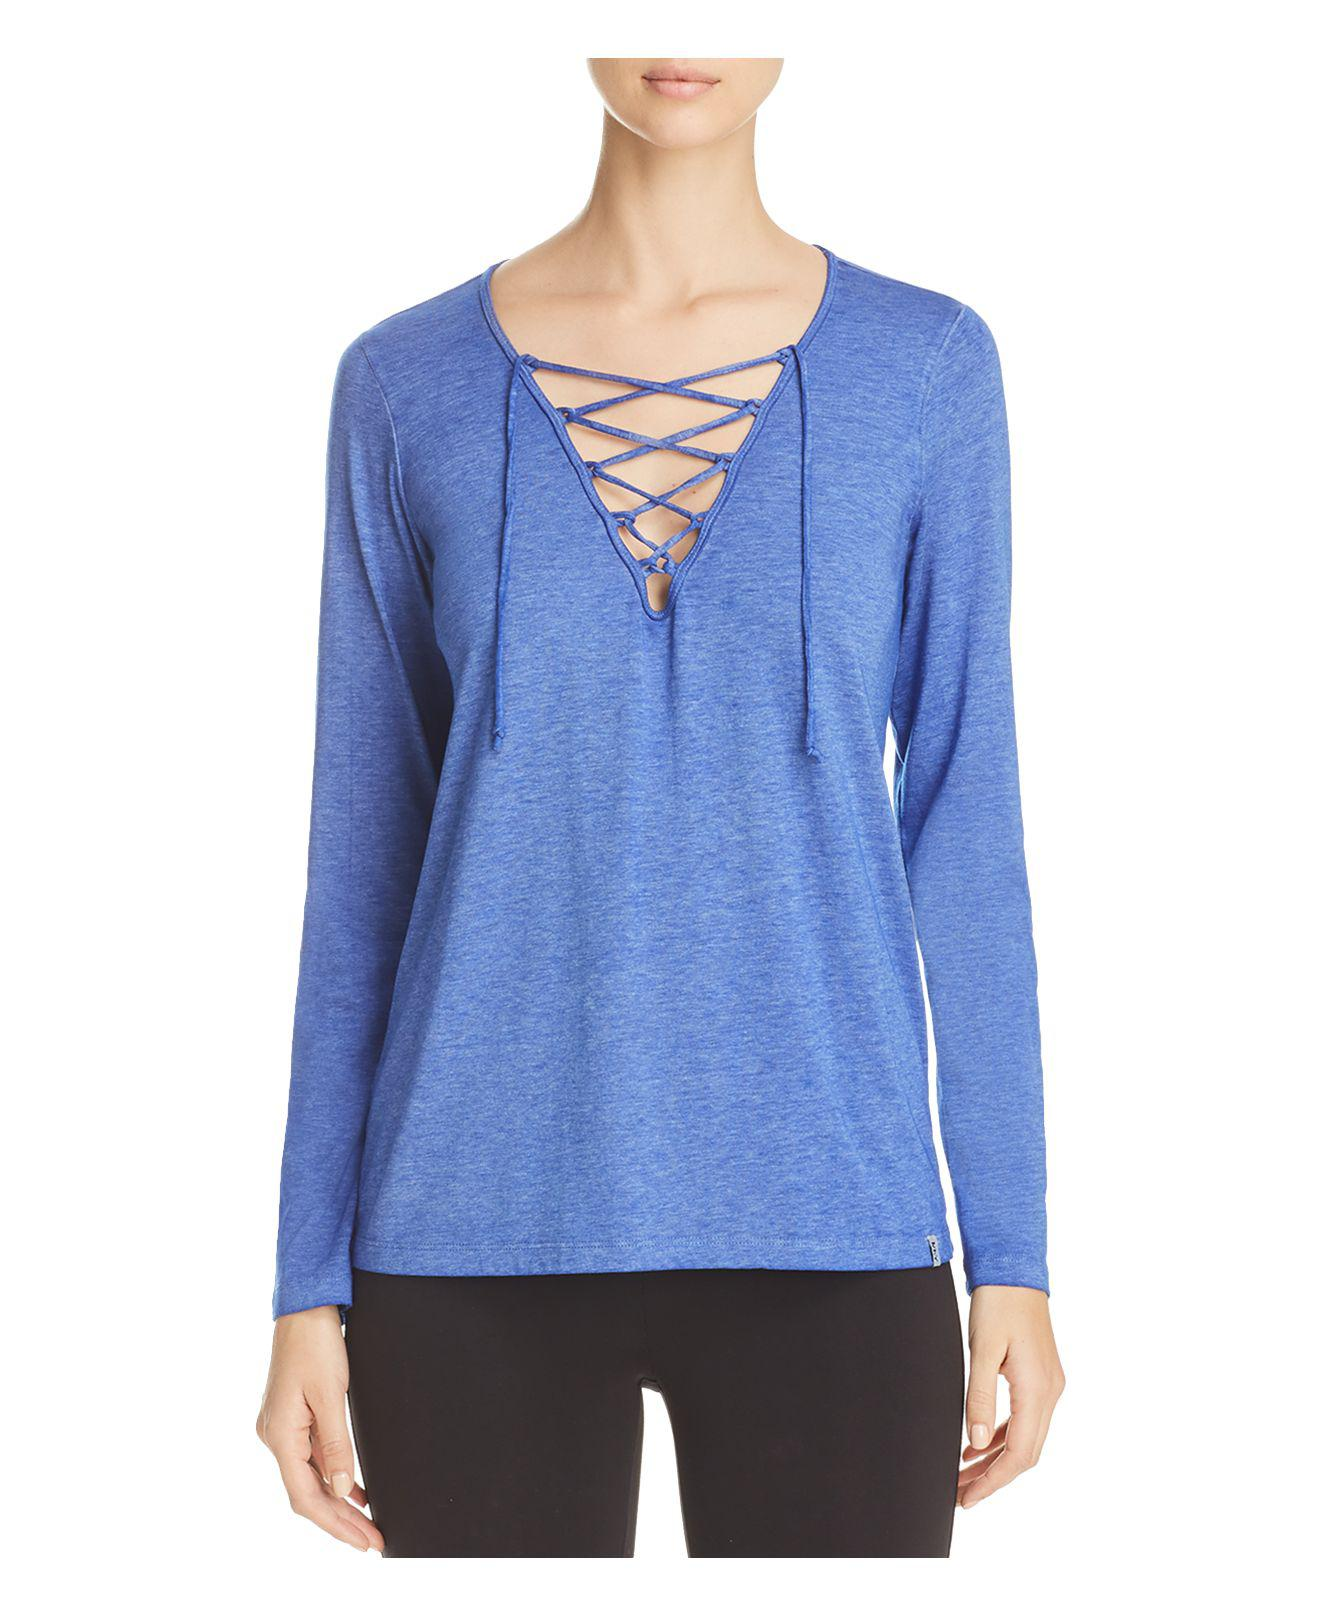 Nyc Performance: Marc New York Performance Lace-up Top In Blue